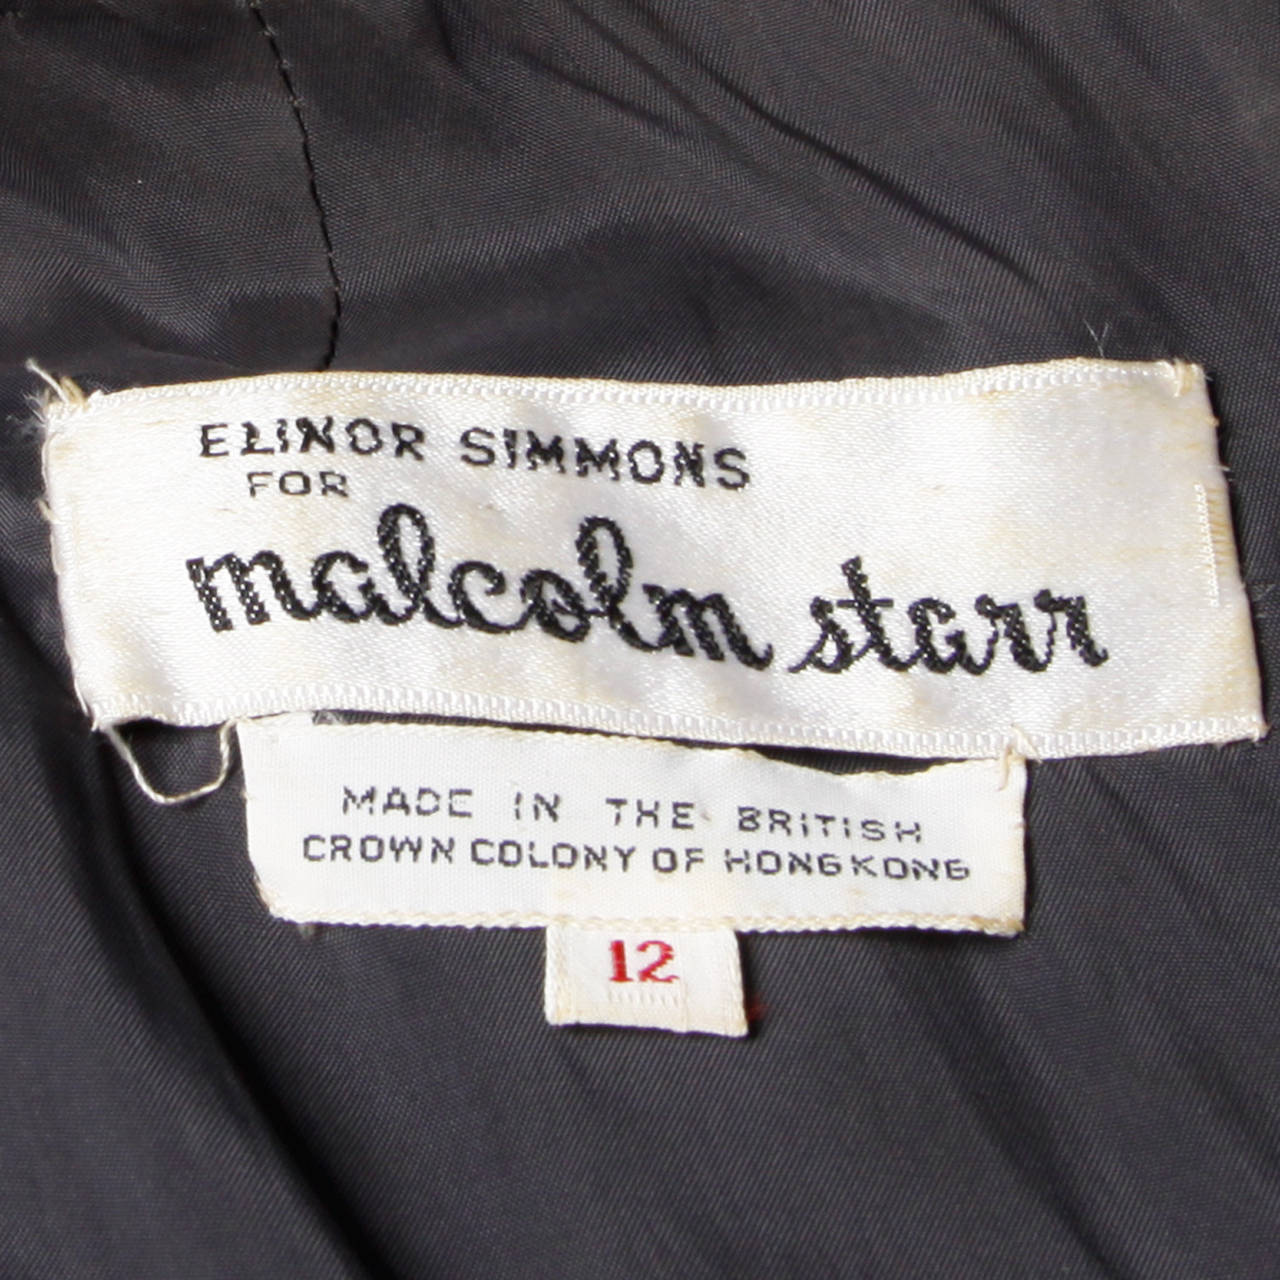 Malcolm Starr Vintage 1960s Gray Wool Rhinestone Embellished Maxi Dress For Sale 2